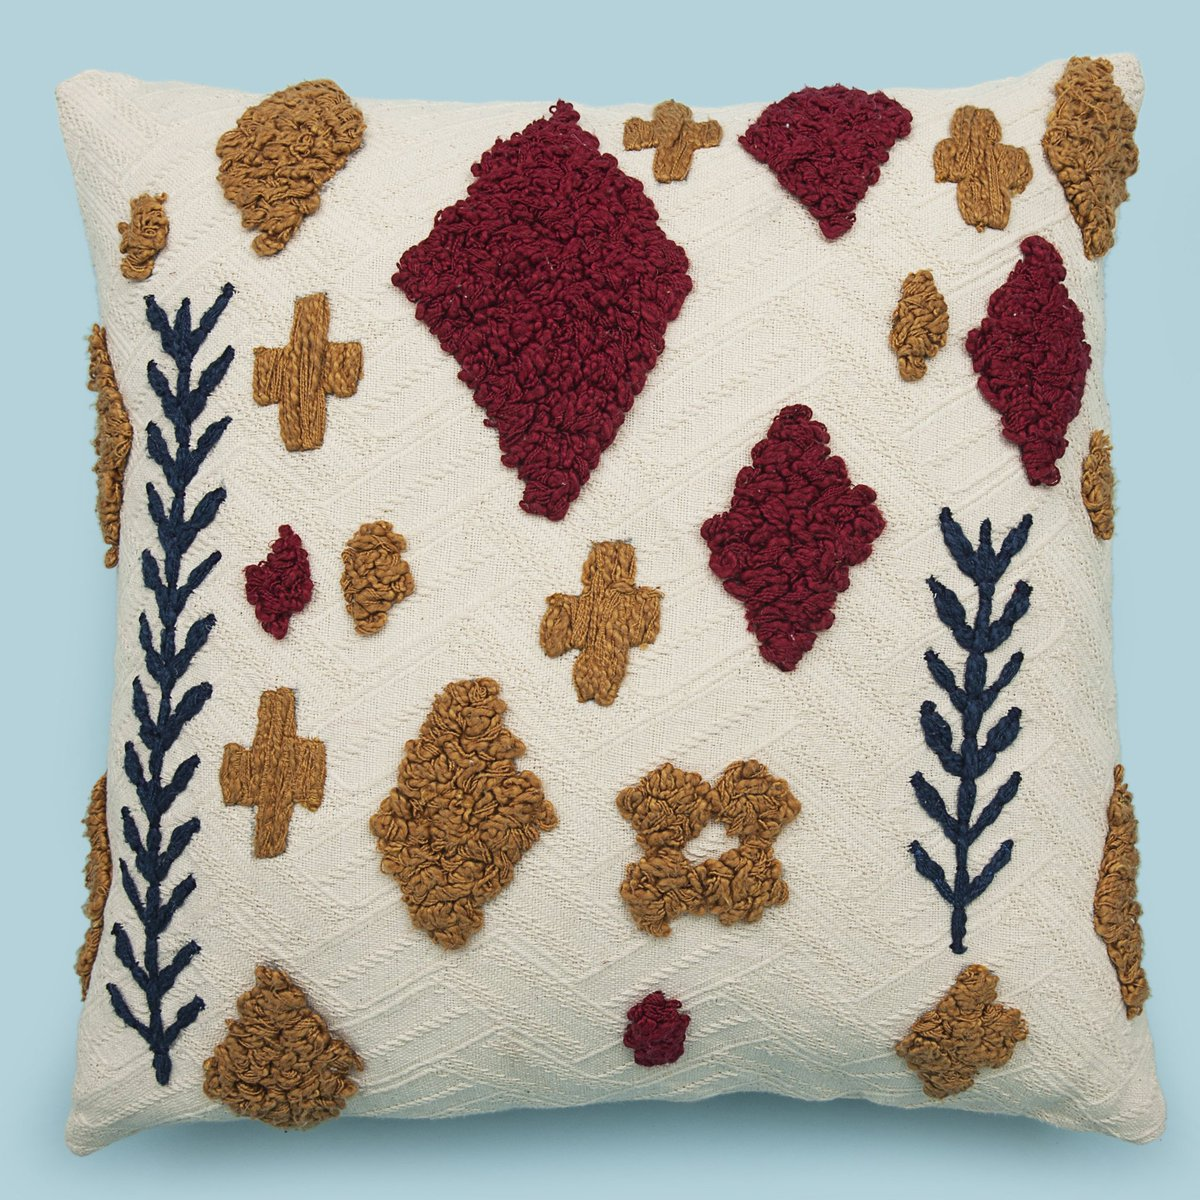 Tufted Moroccan Pillow Cover Case  . . . #love #white #followback #instagramers #envywear #tweegram #photooftheday #amazing #smile #follow4follow #like4like #look #instalike #igers #picoftheday #food #instadaily #instafollow #followme #girl #style #swag